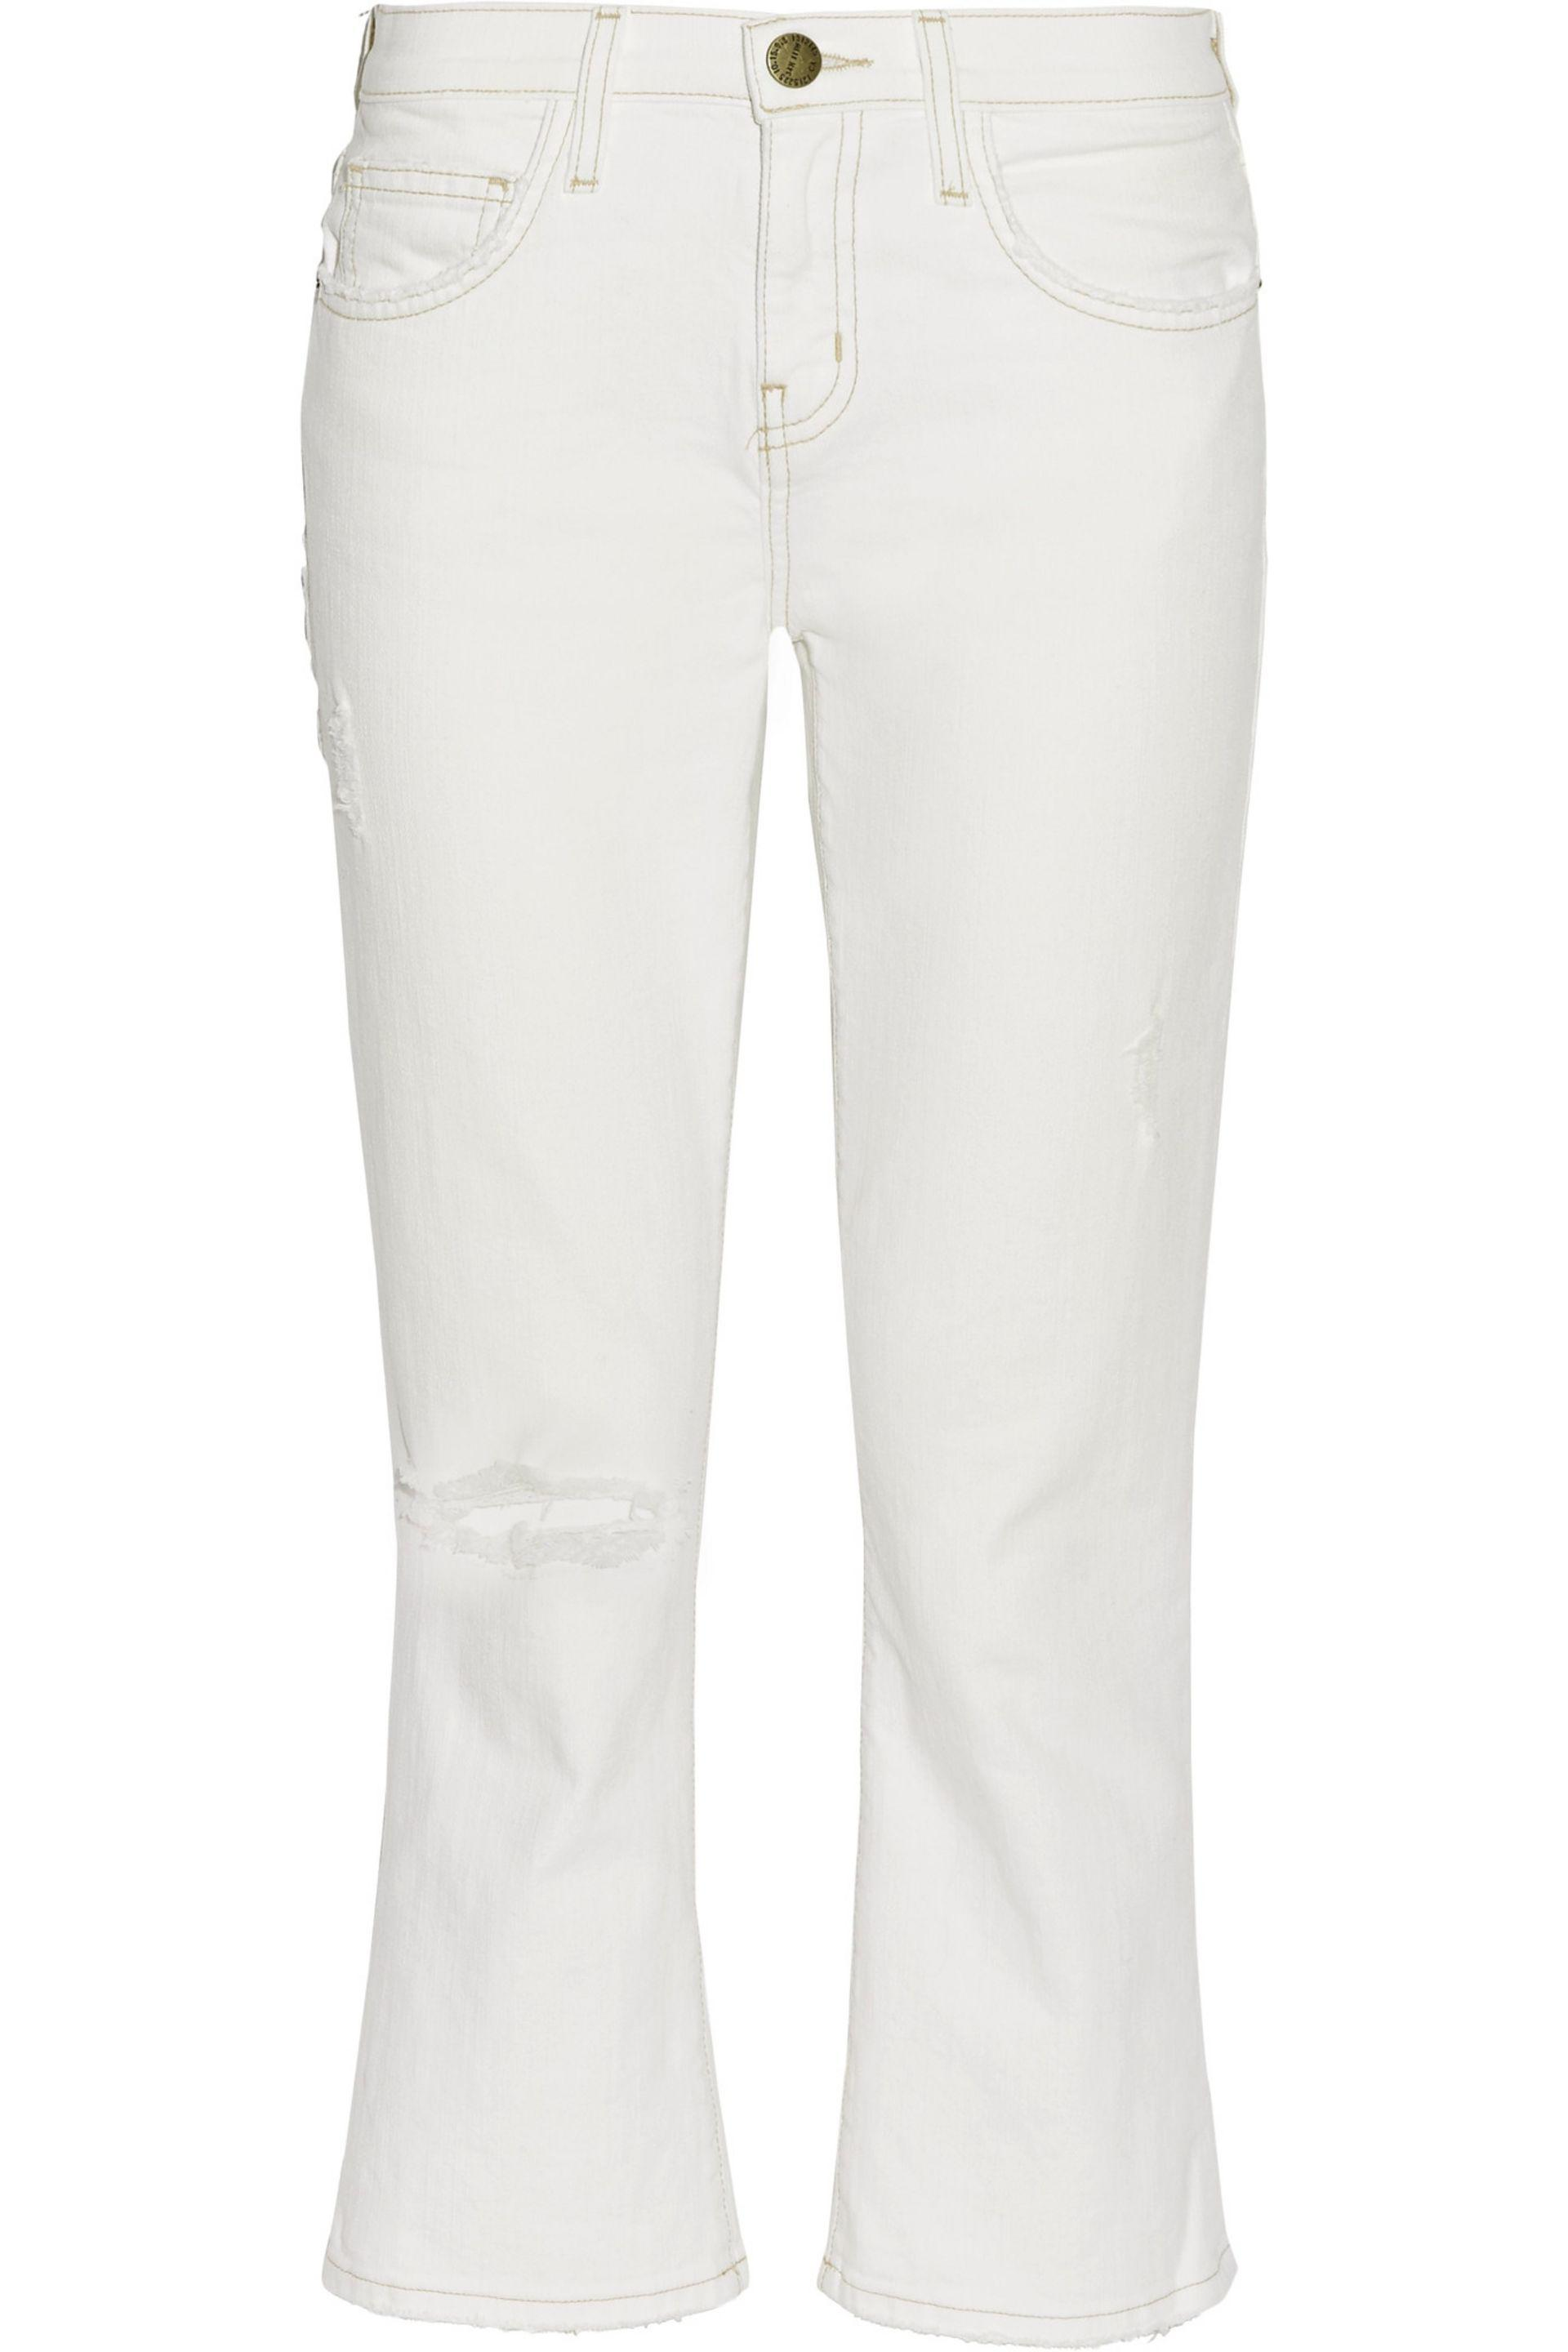 Current/elliott Woman The Kick Jean Cropped Mid-rise Bootcut Jeans White Size 25 Current Elliott Really Explore Cheap Price Buy Cheap Best Wholesale GlRWhk9wV